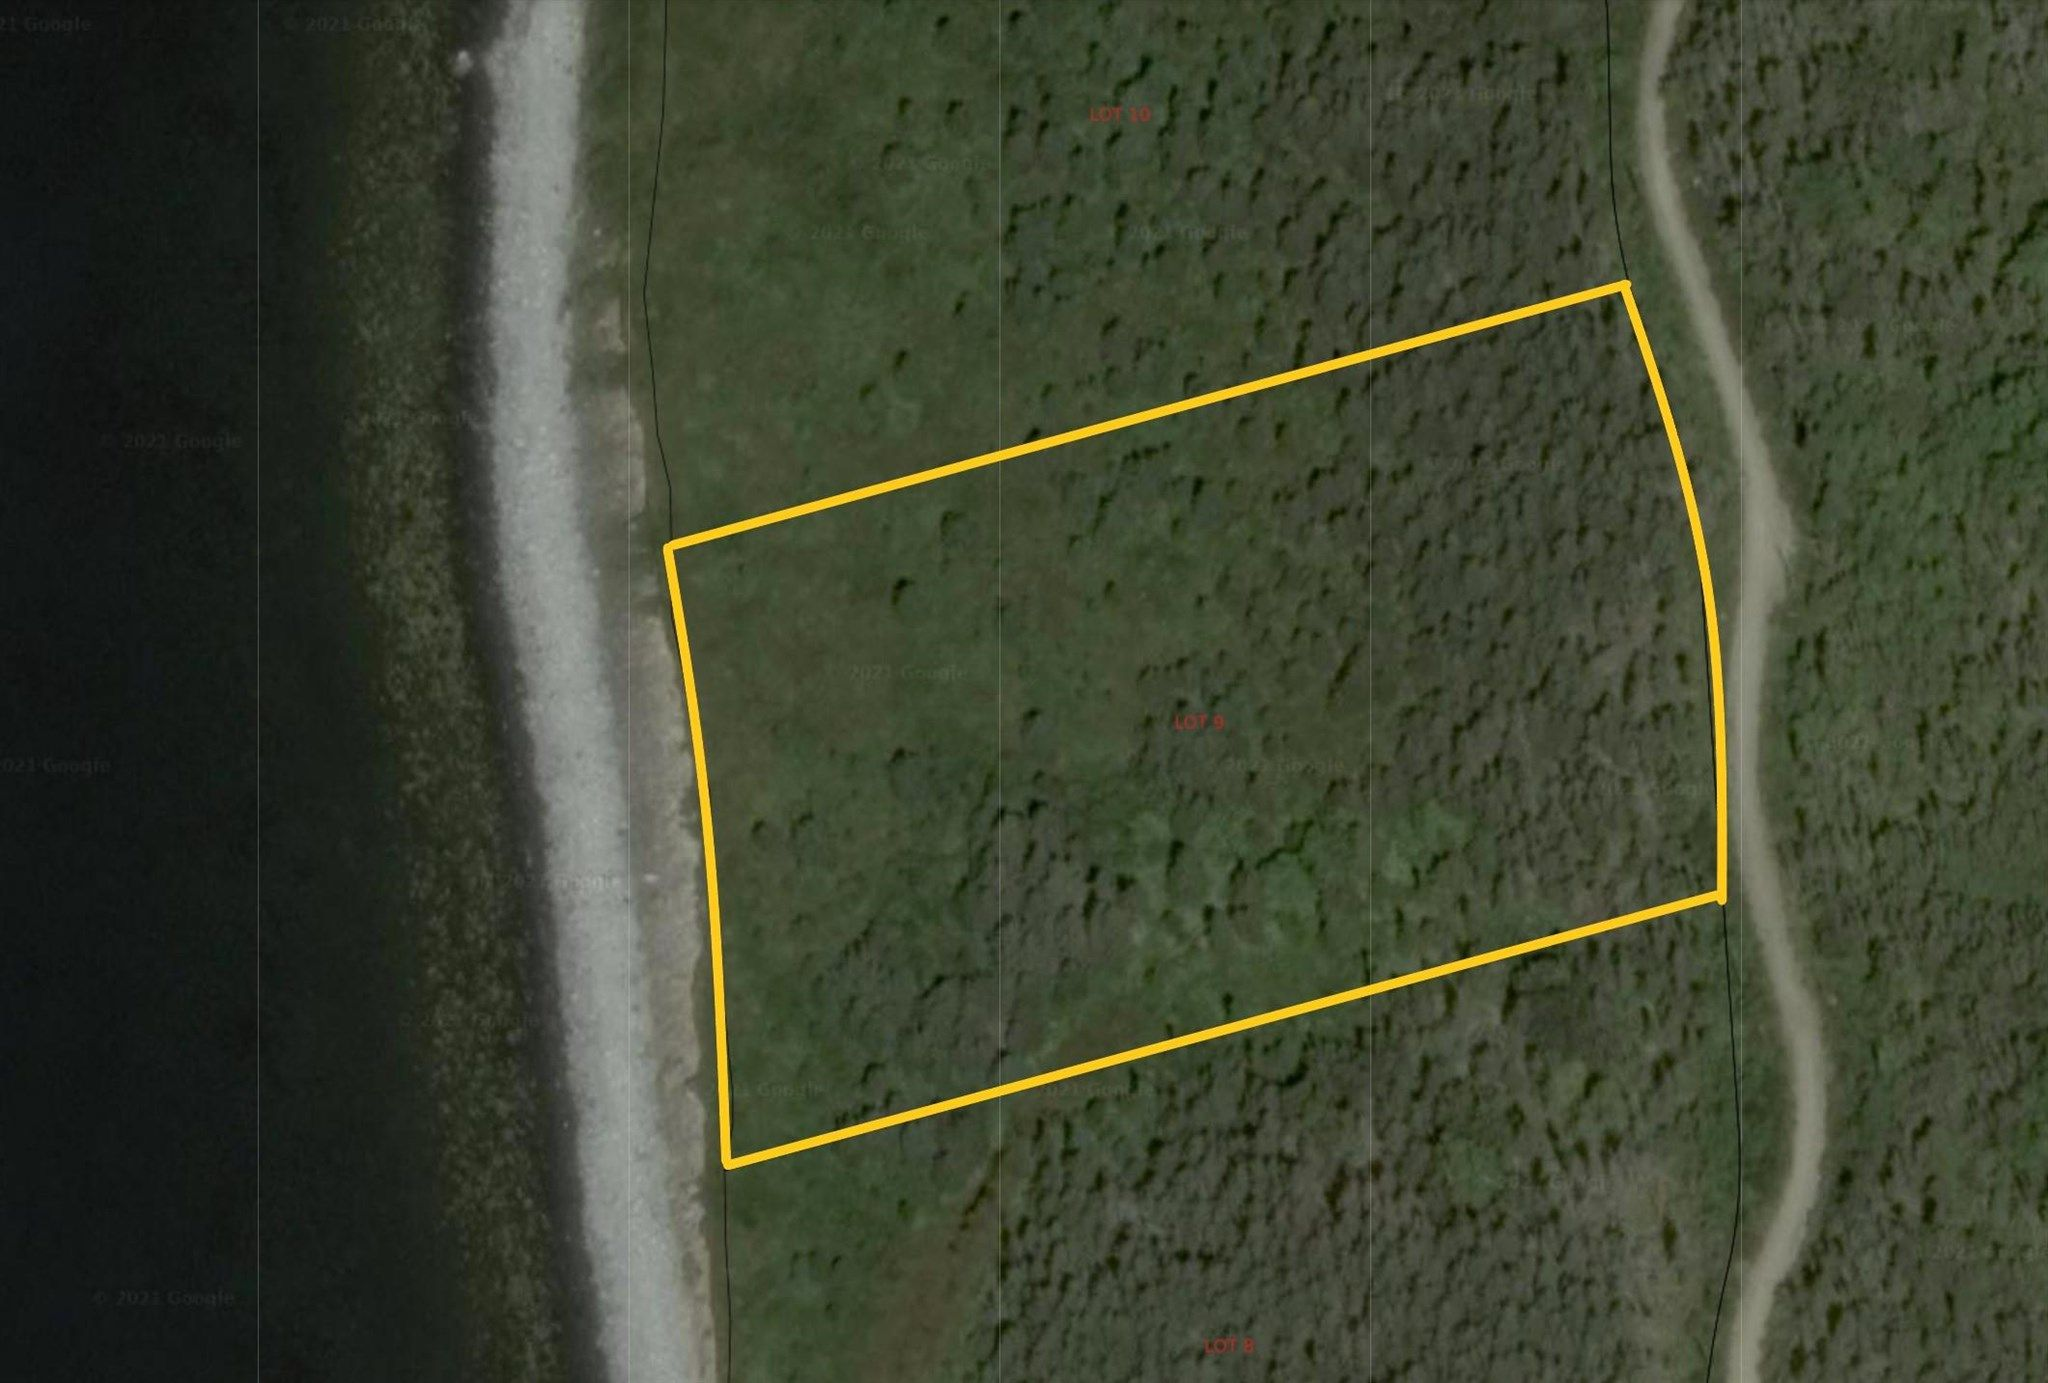 Main Photo: Lot 9 Youngs Road in East Green Harbour: 407-Shelburne County Vacant Land for sale (South Shore)  : MLS®# 202118168